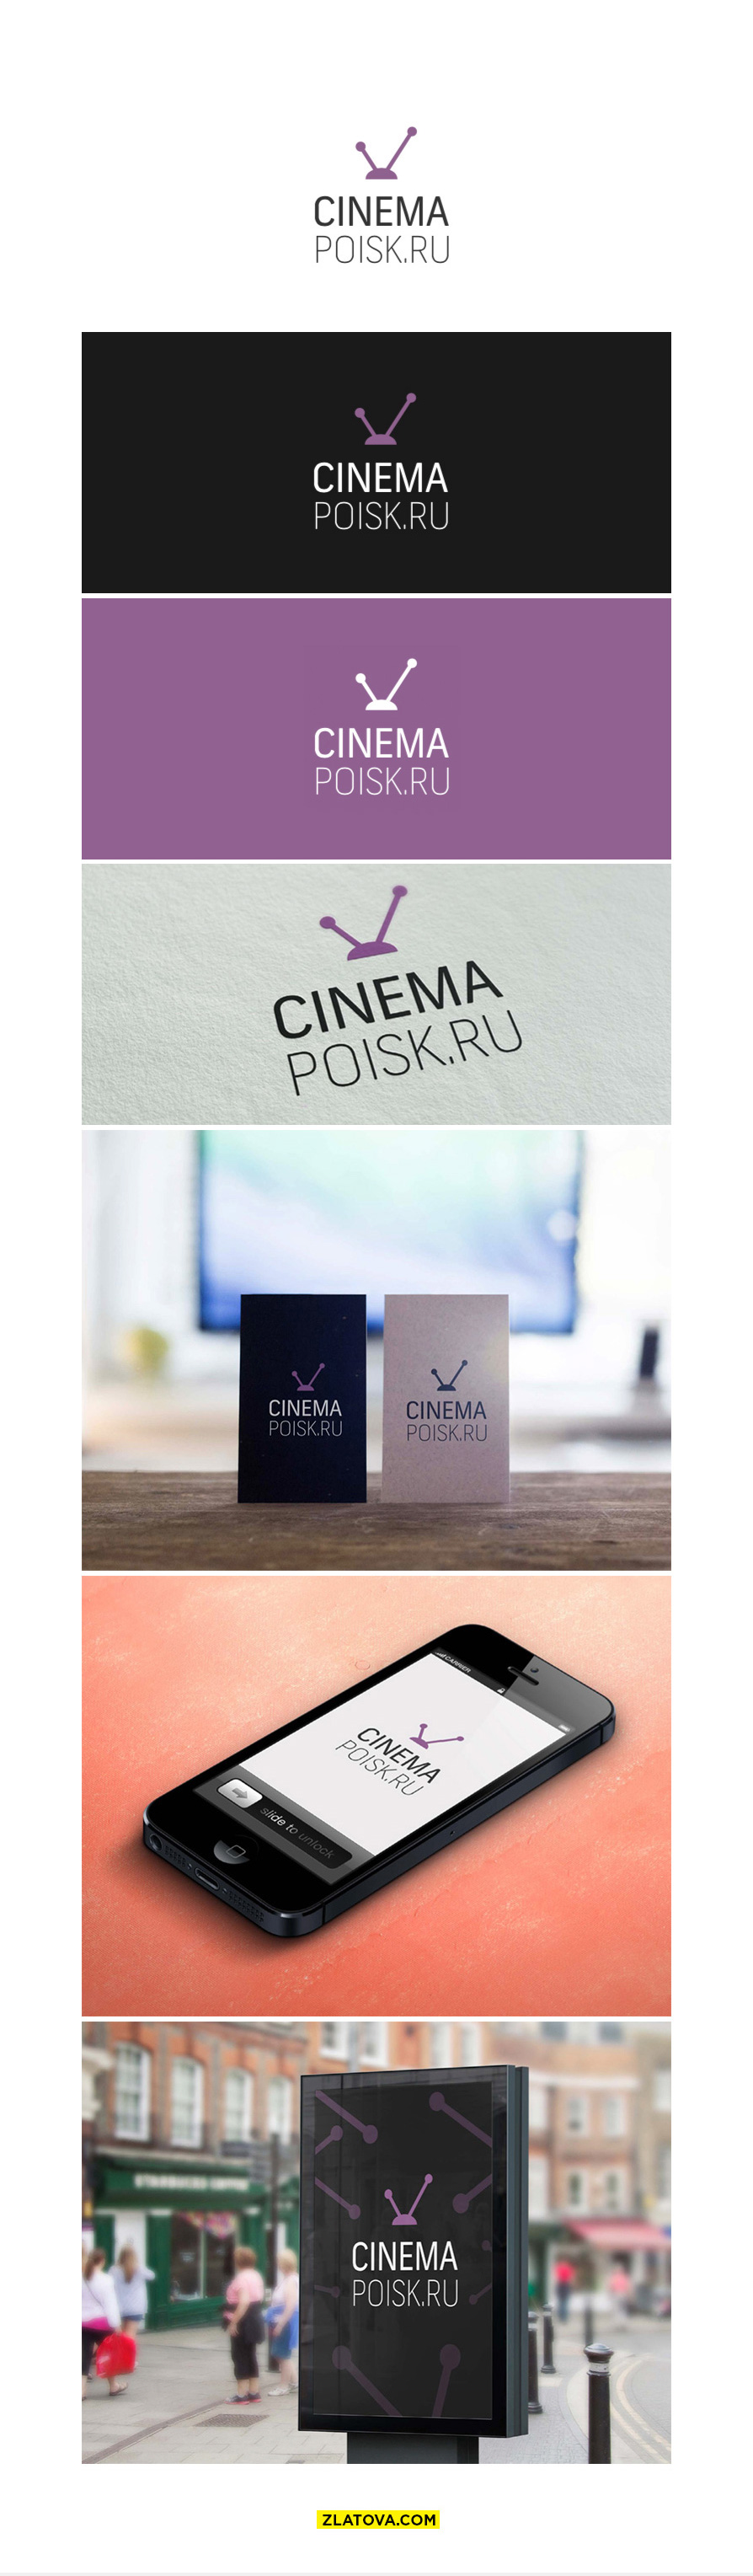 Cinemapoisk.ru